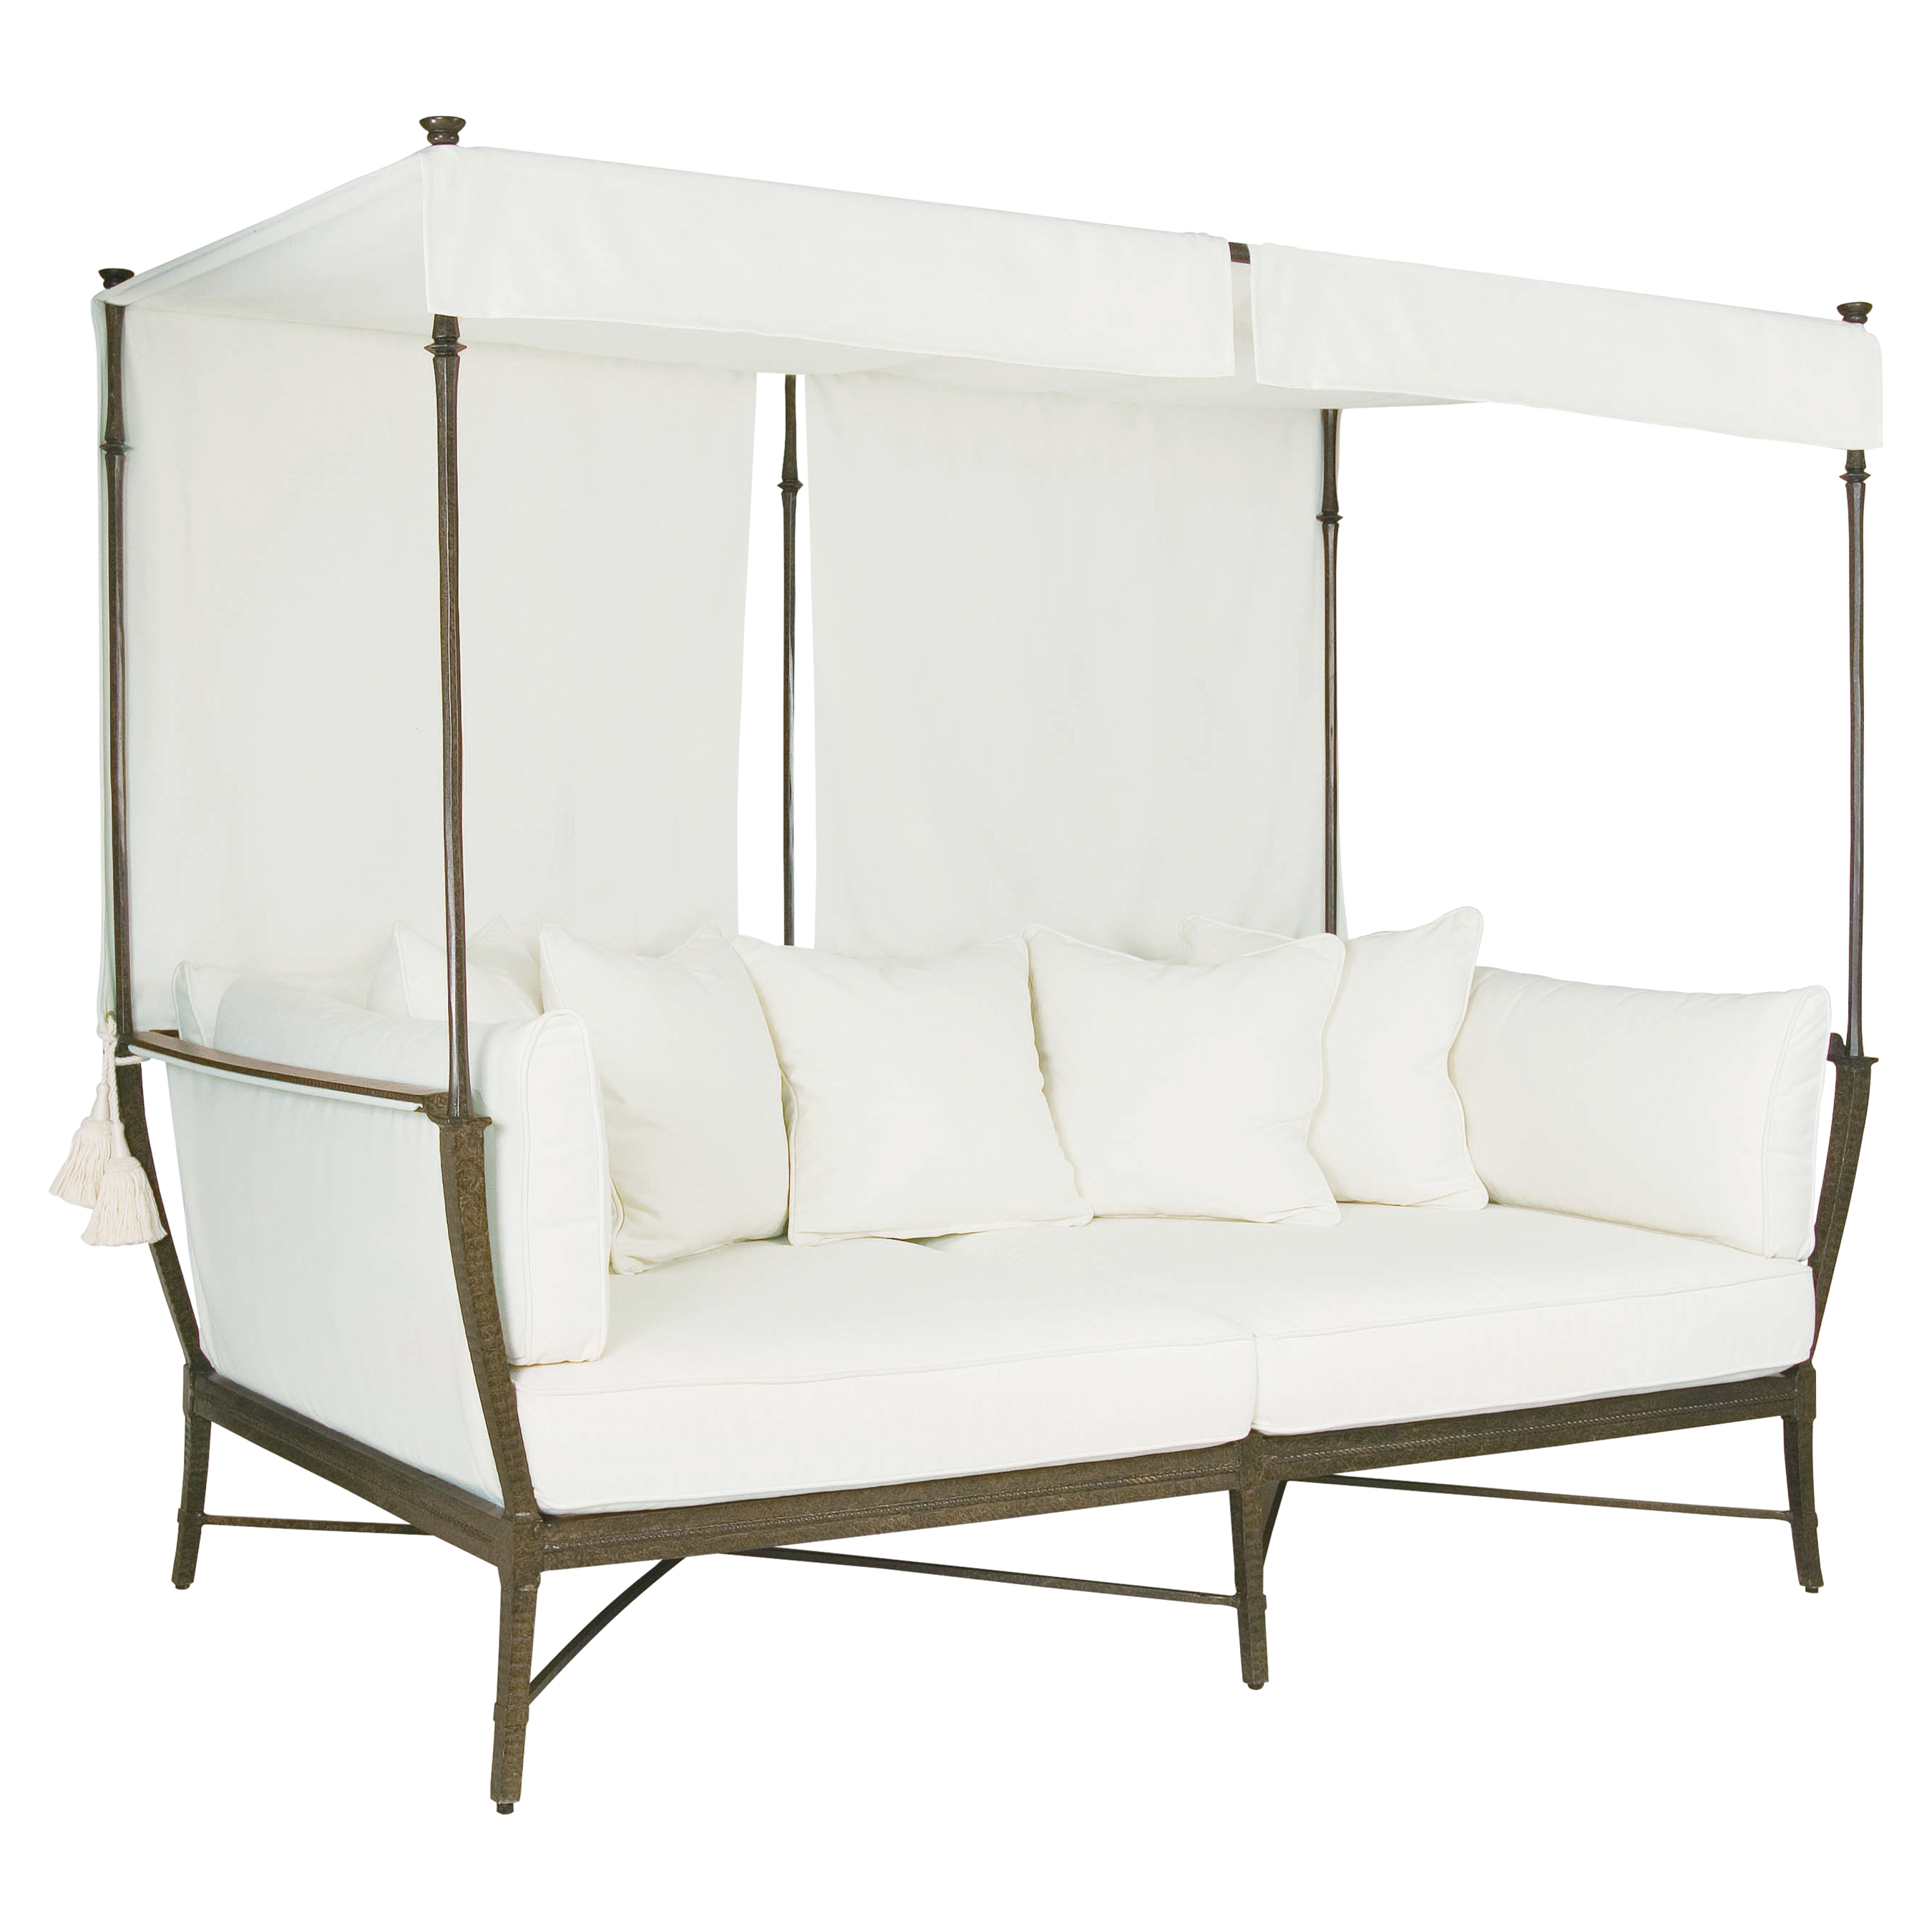 Jane Modern French White Canopy Metal Outdoor Daybed  sc 1 st  Kathy Kuo Home & Designer Outdoor Sofas And Sectionals - Eclectic Outdoor Sofas And ...